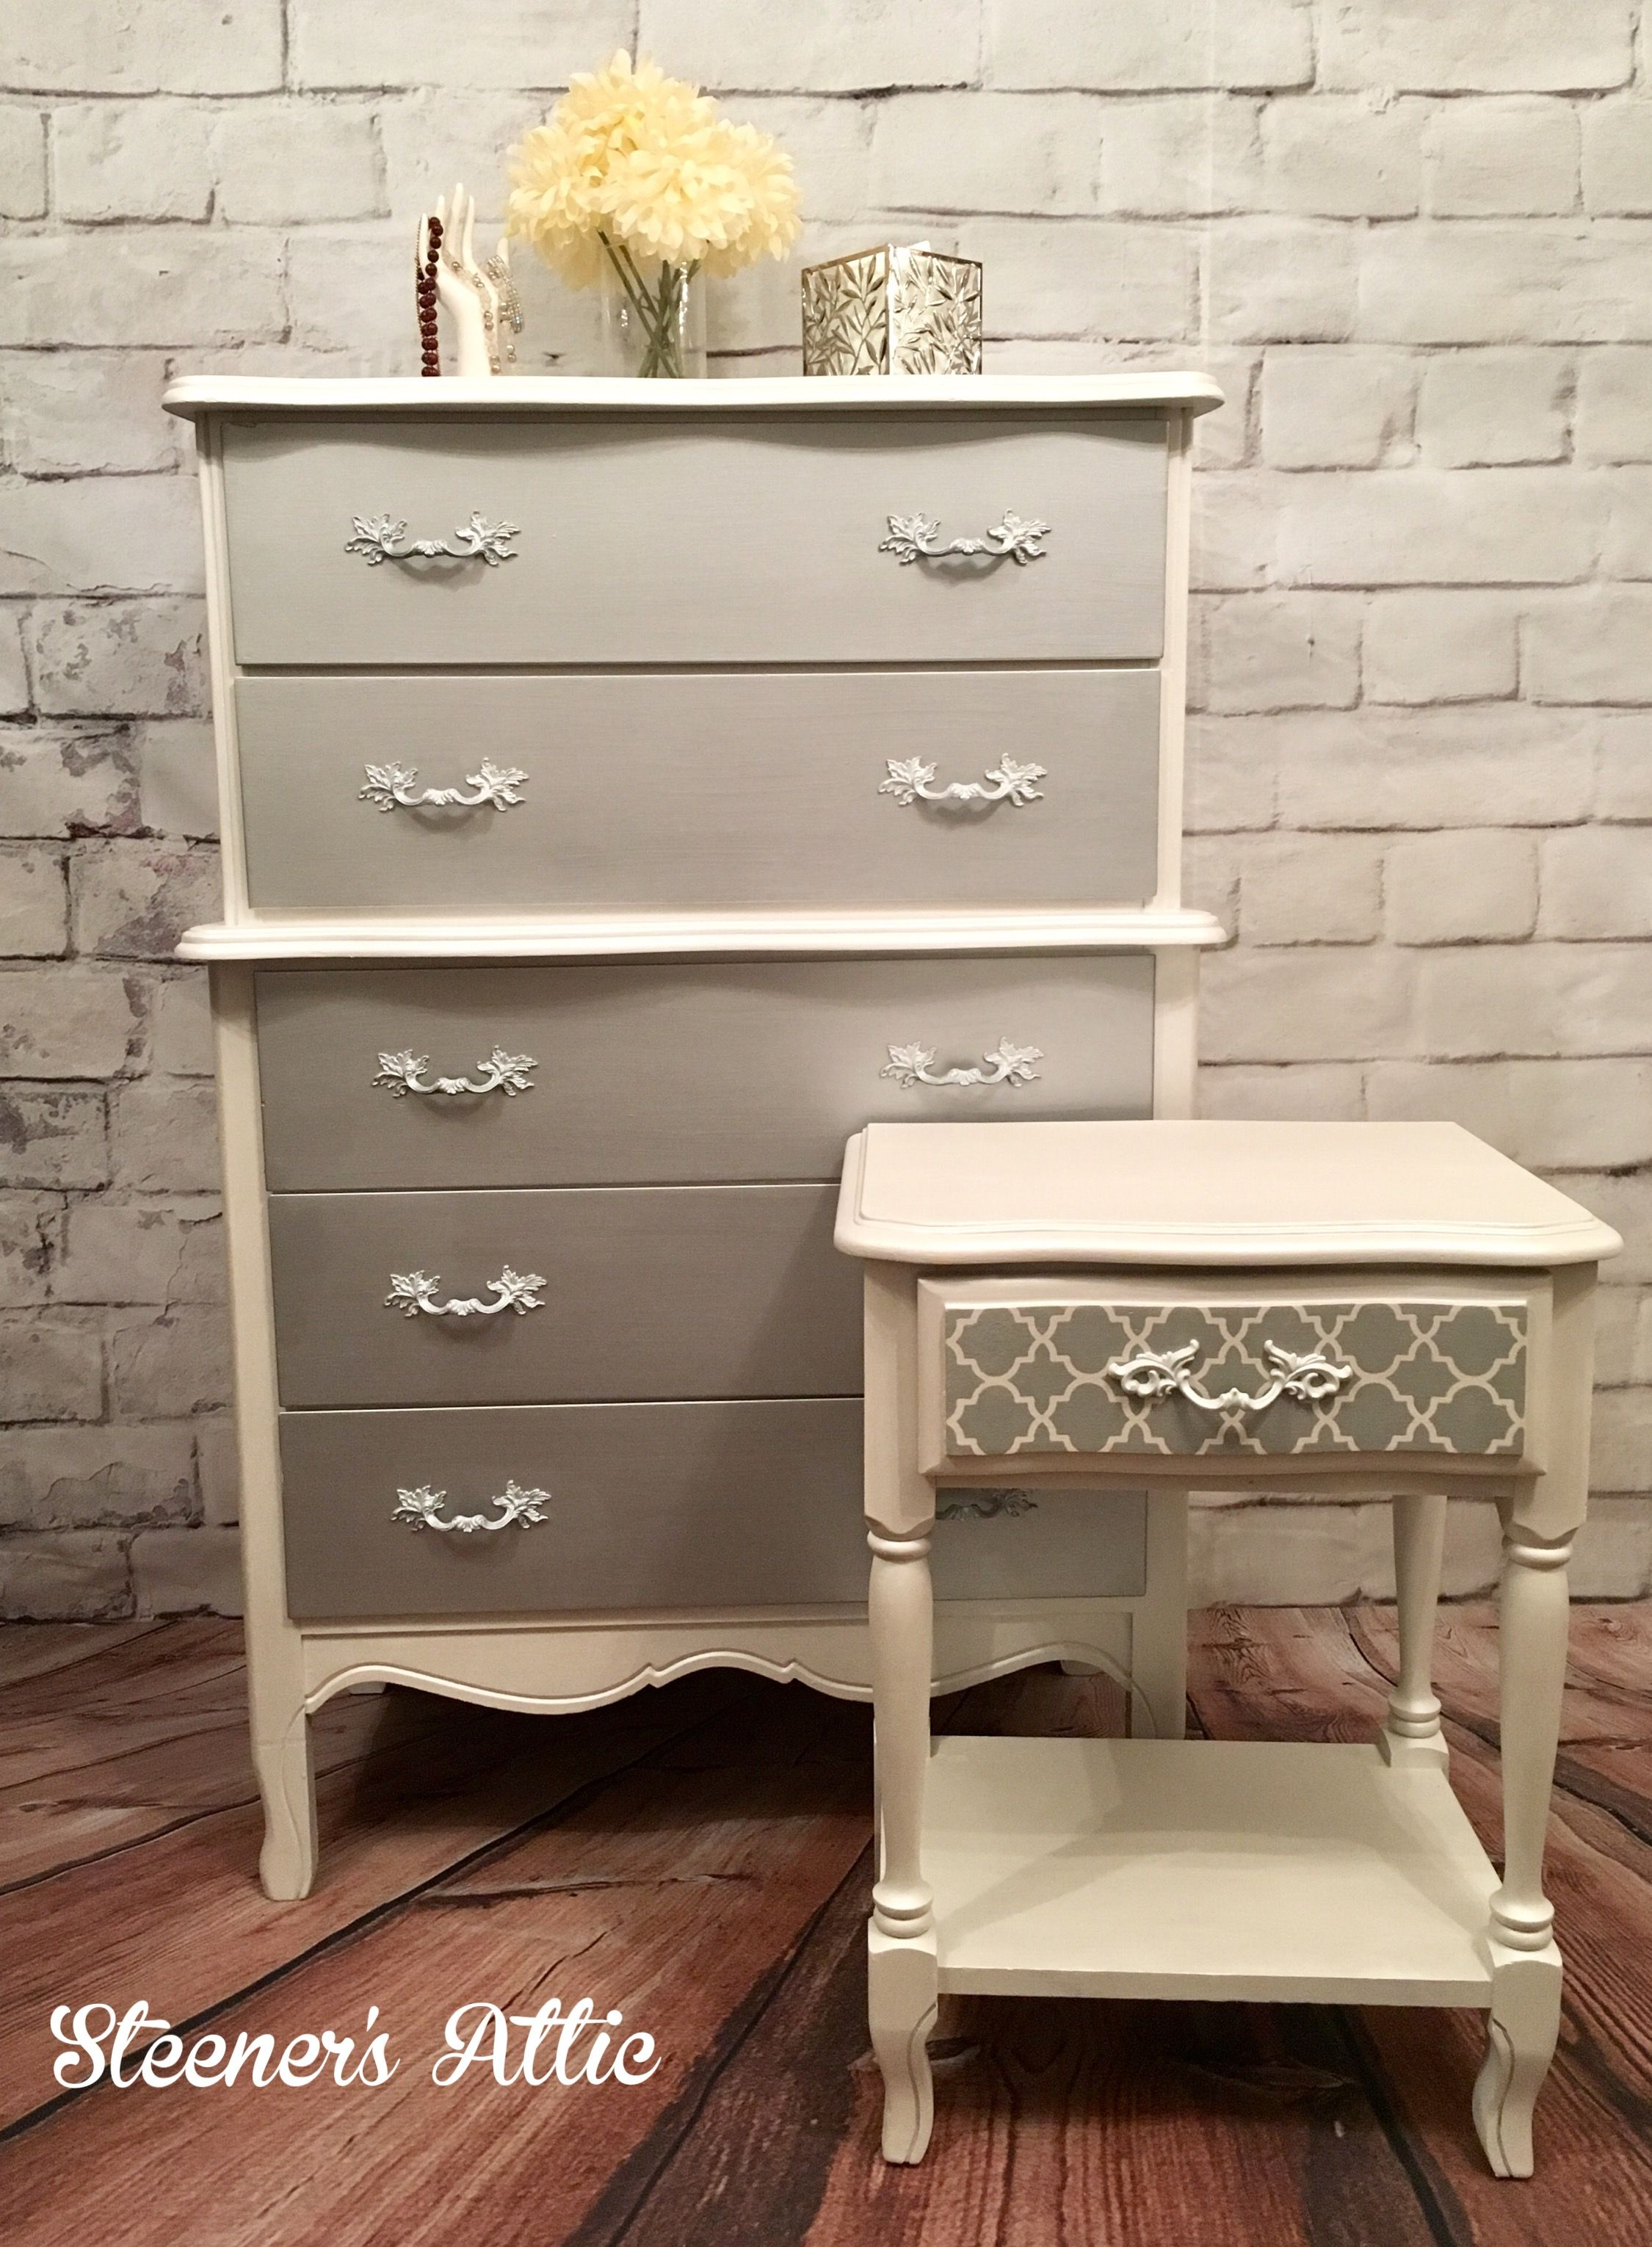 Refinished French Provincial Dresser and Nightstand Metallic Silver